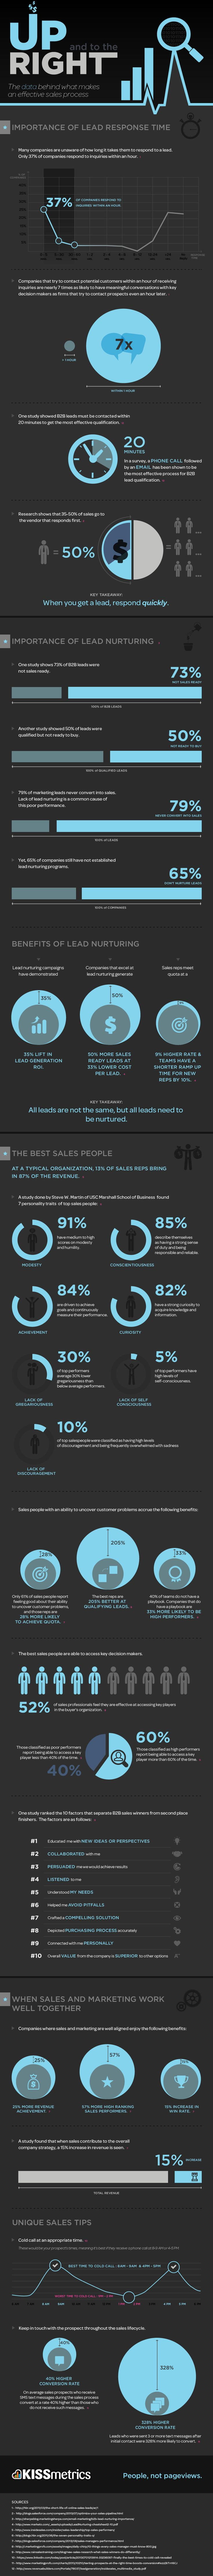 Infographic: The Data Behind What Makes an Effective Sales Process